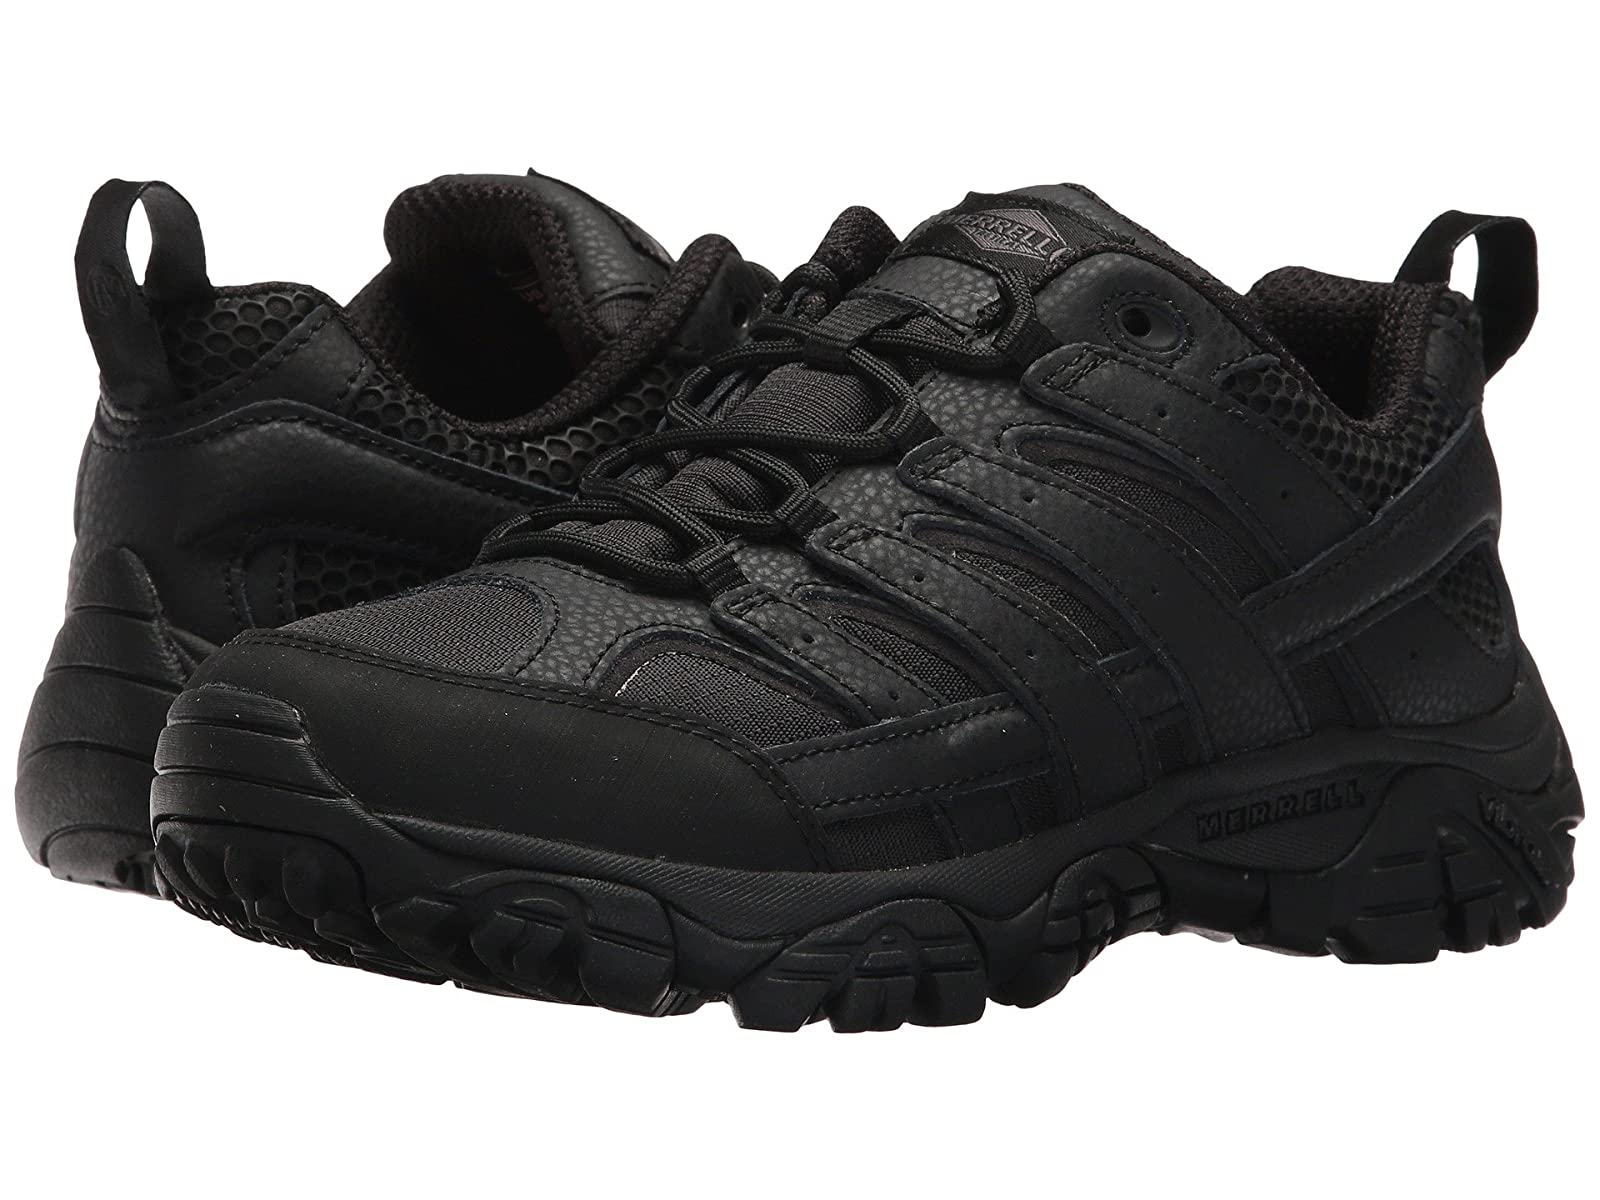 Merrell Work Moab 2 TacticalAtmospheric grades have affordable shoes